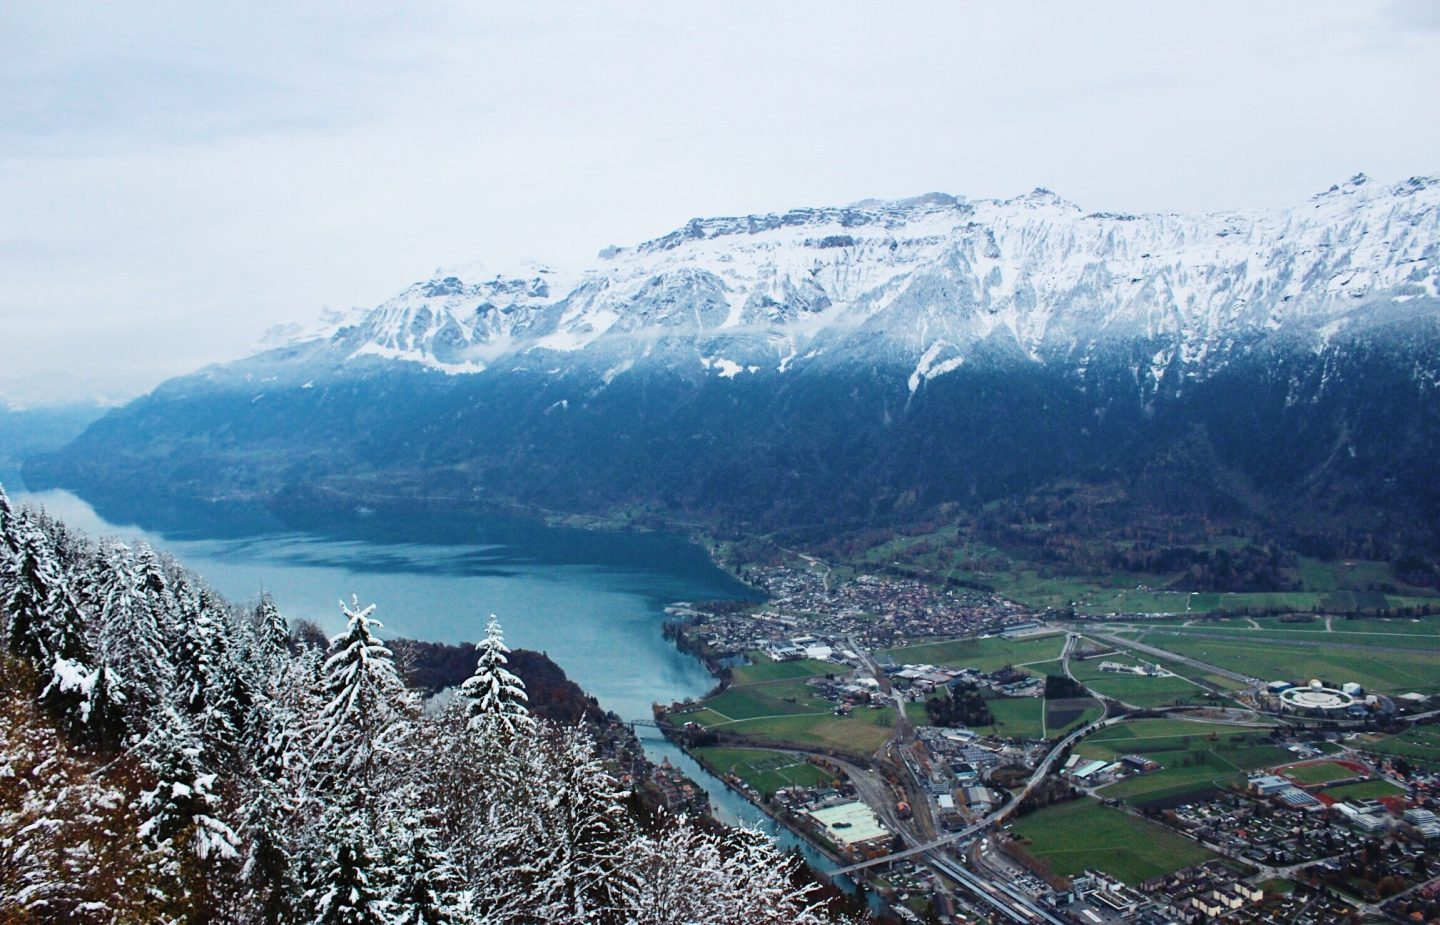 The view from the top of Harderkulm Mountain in Interlaken, Switzerland!